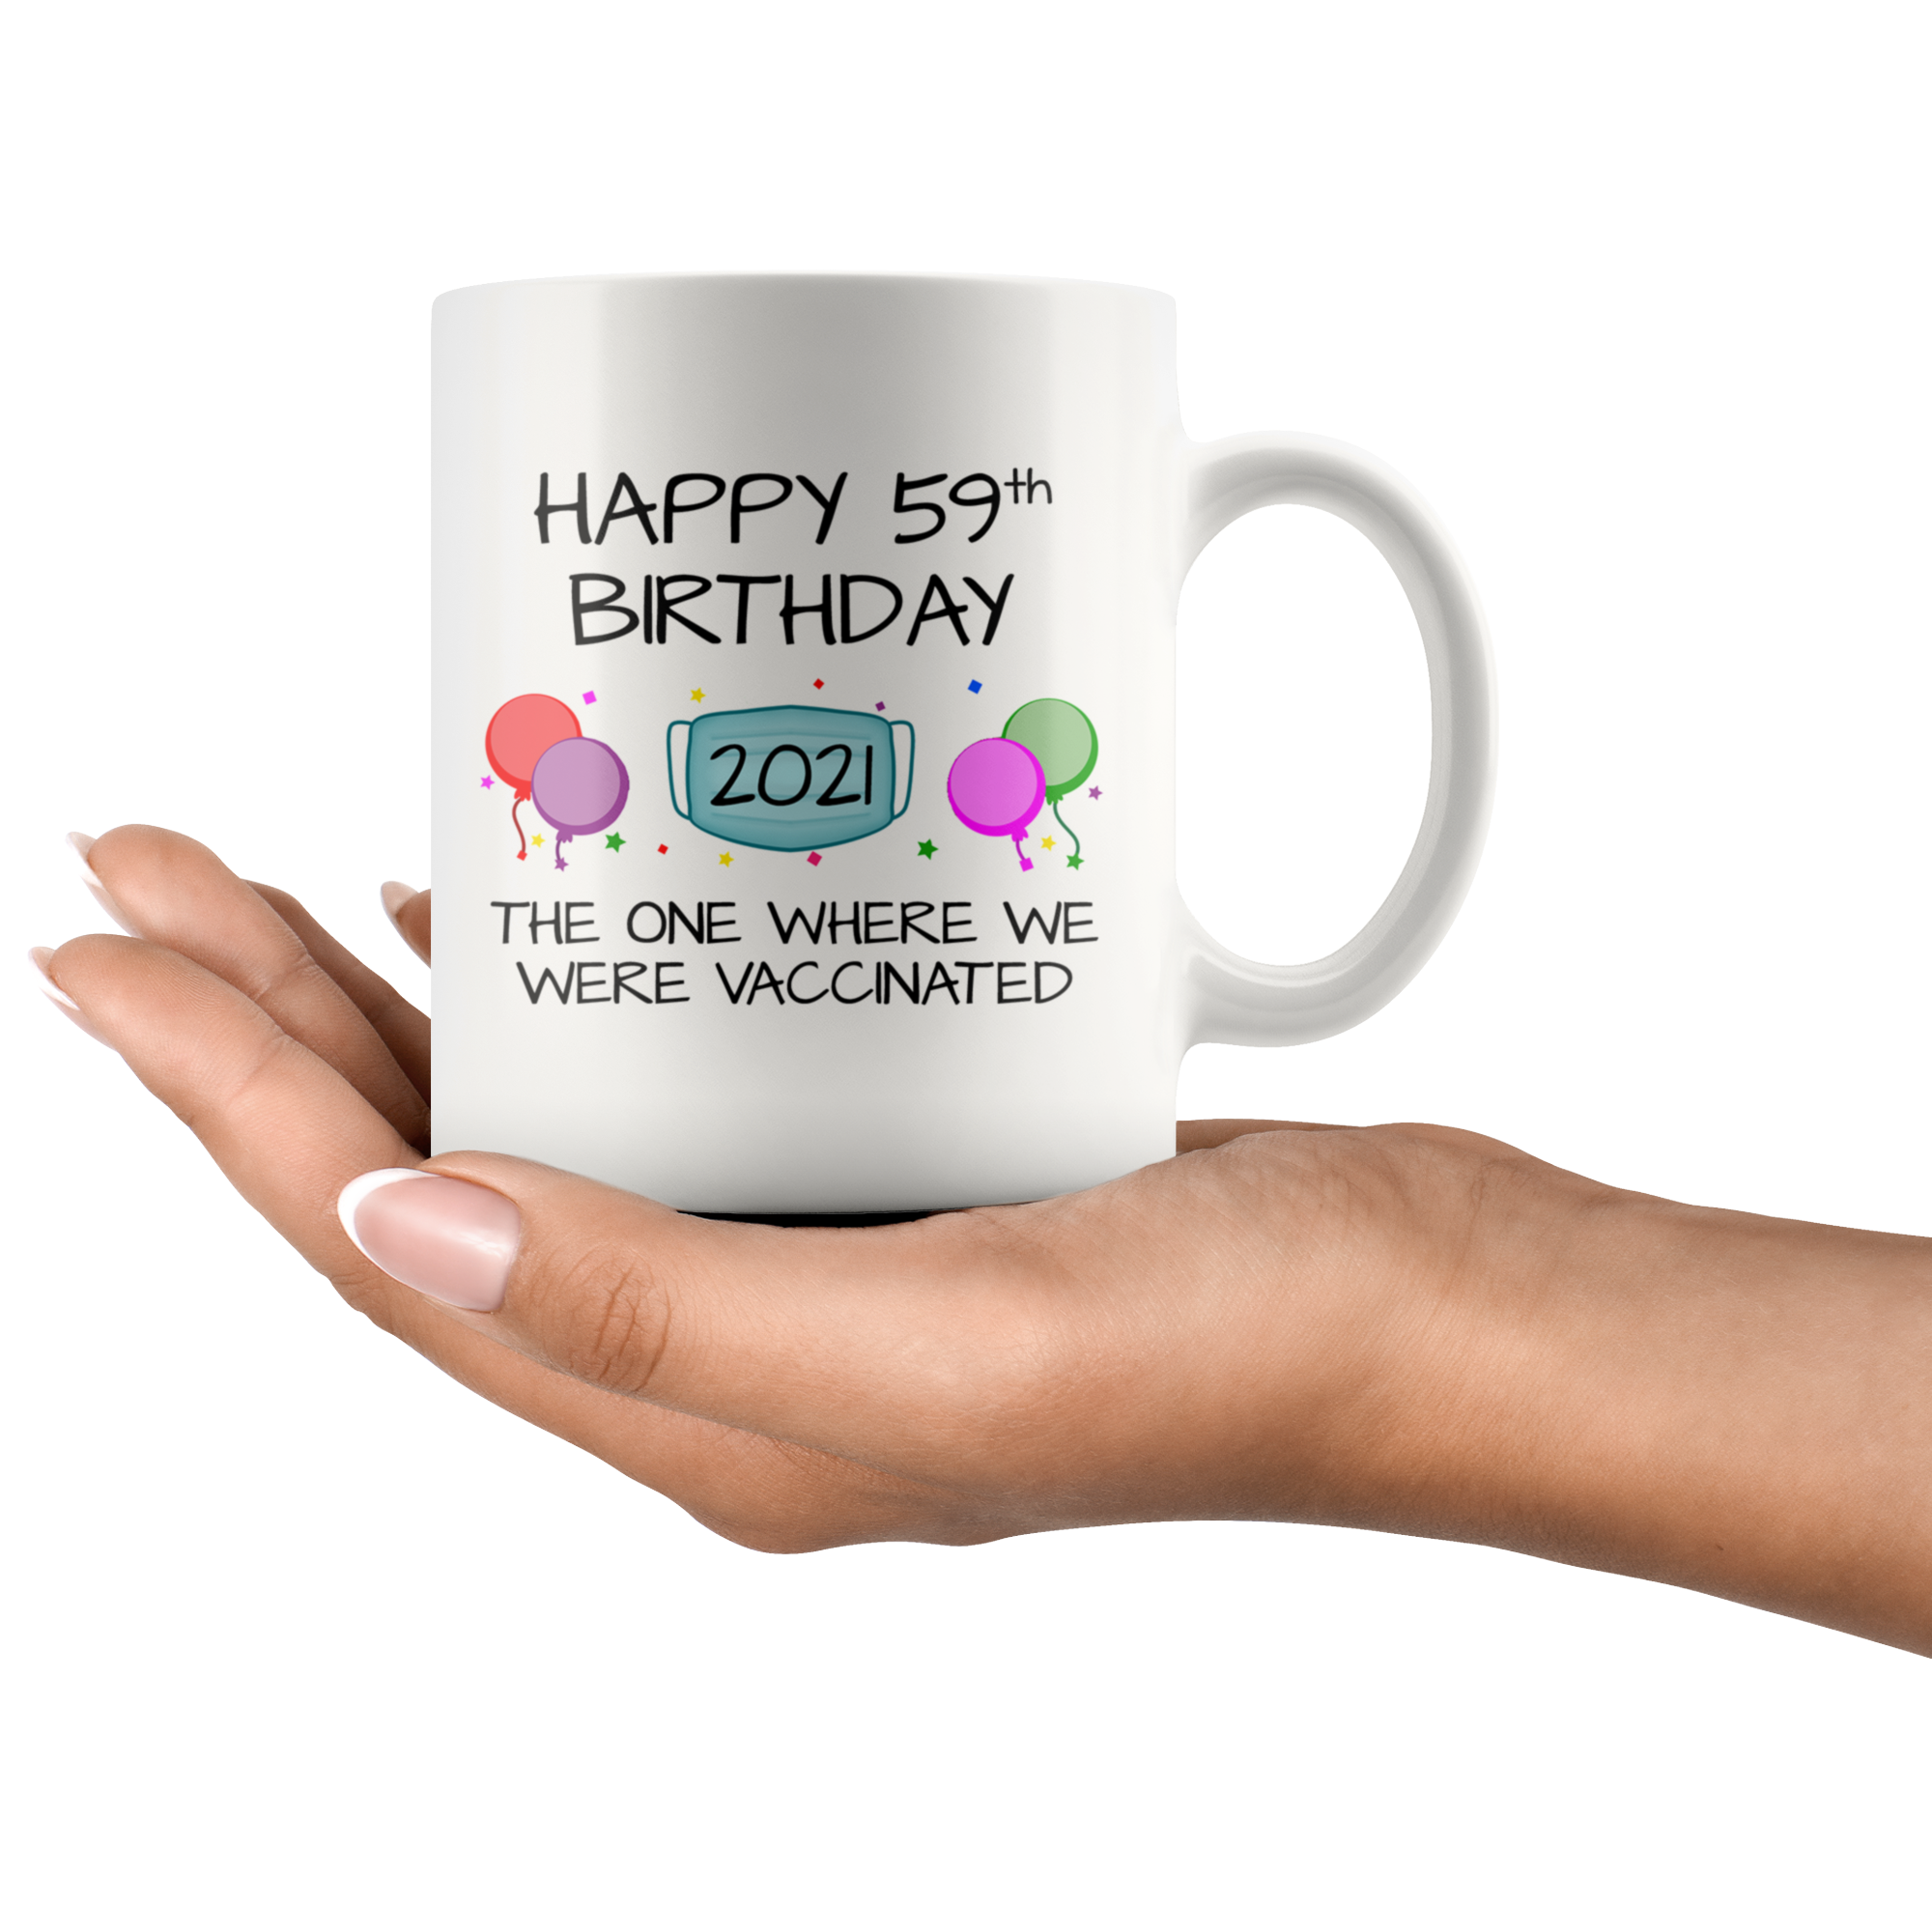 59th Birthday Mug 2021